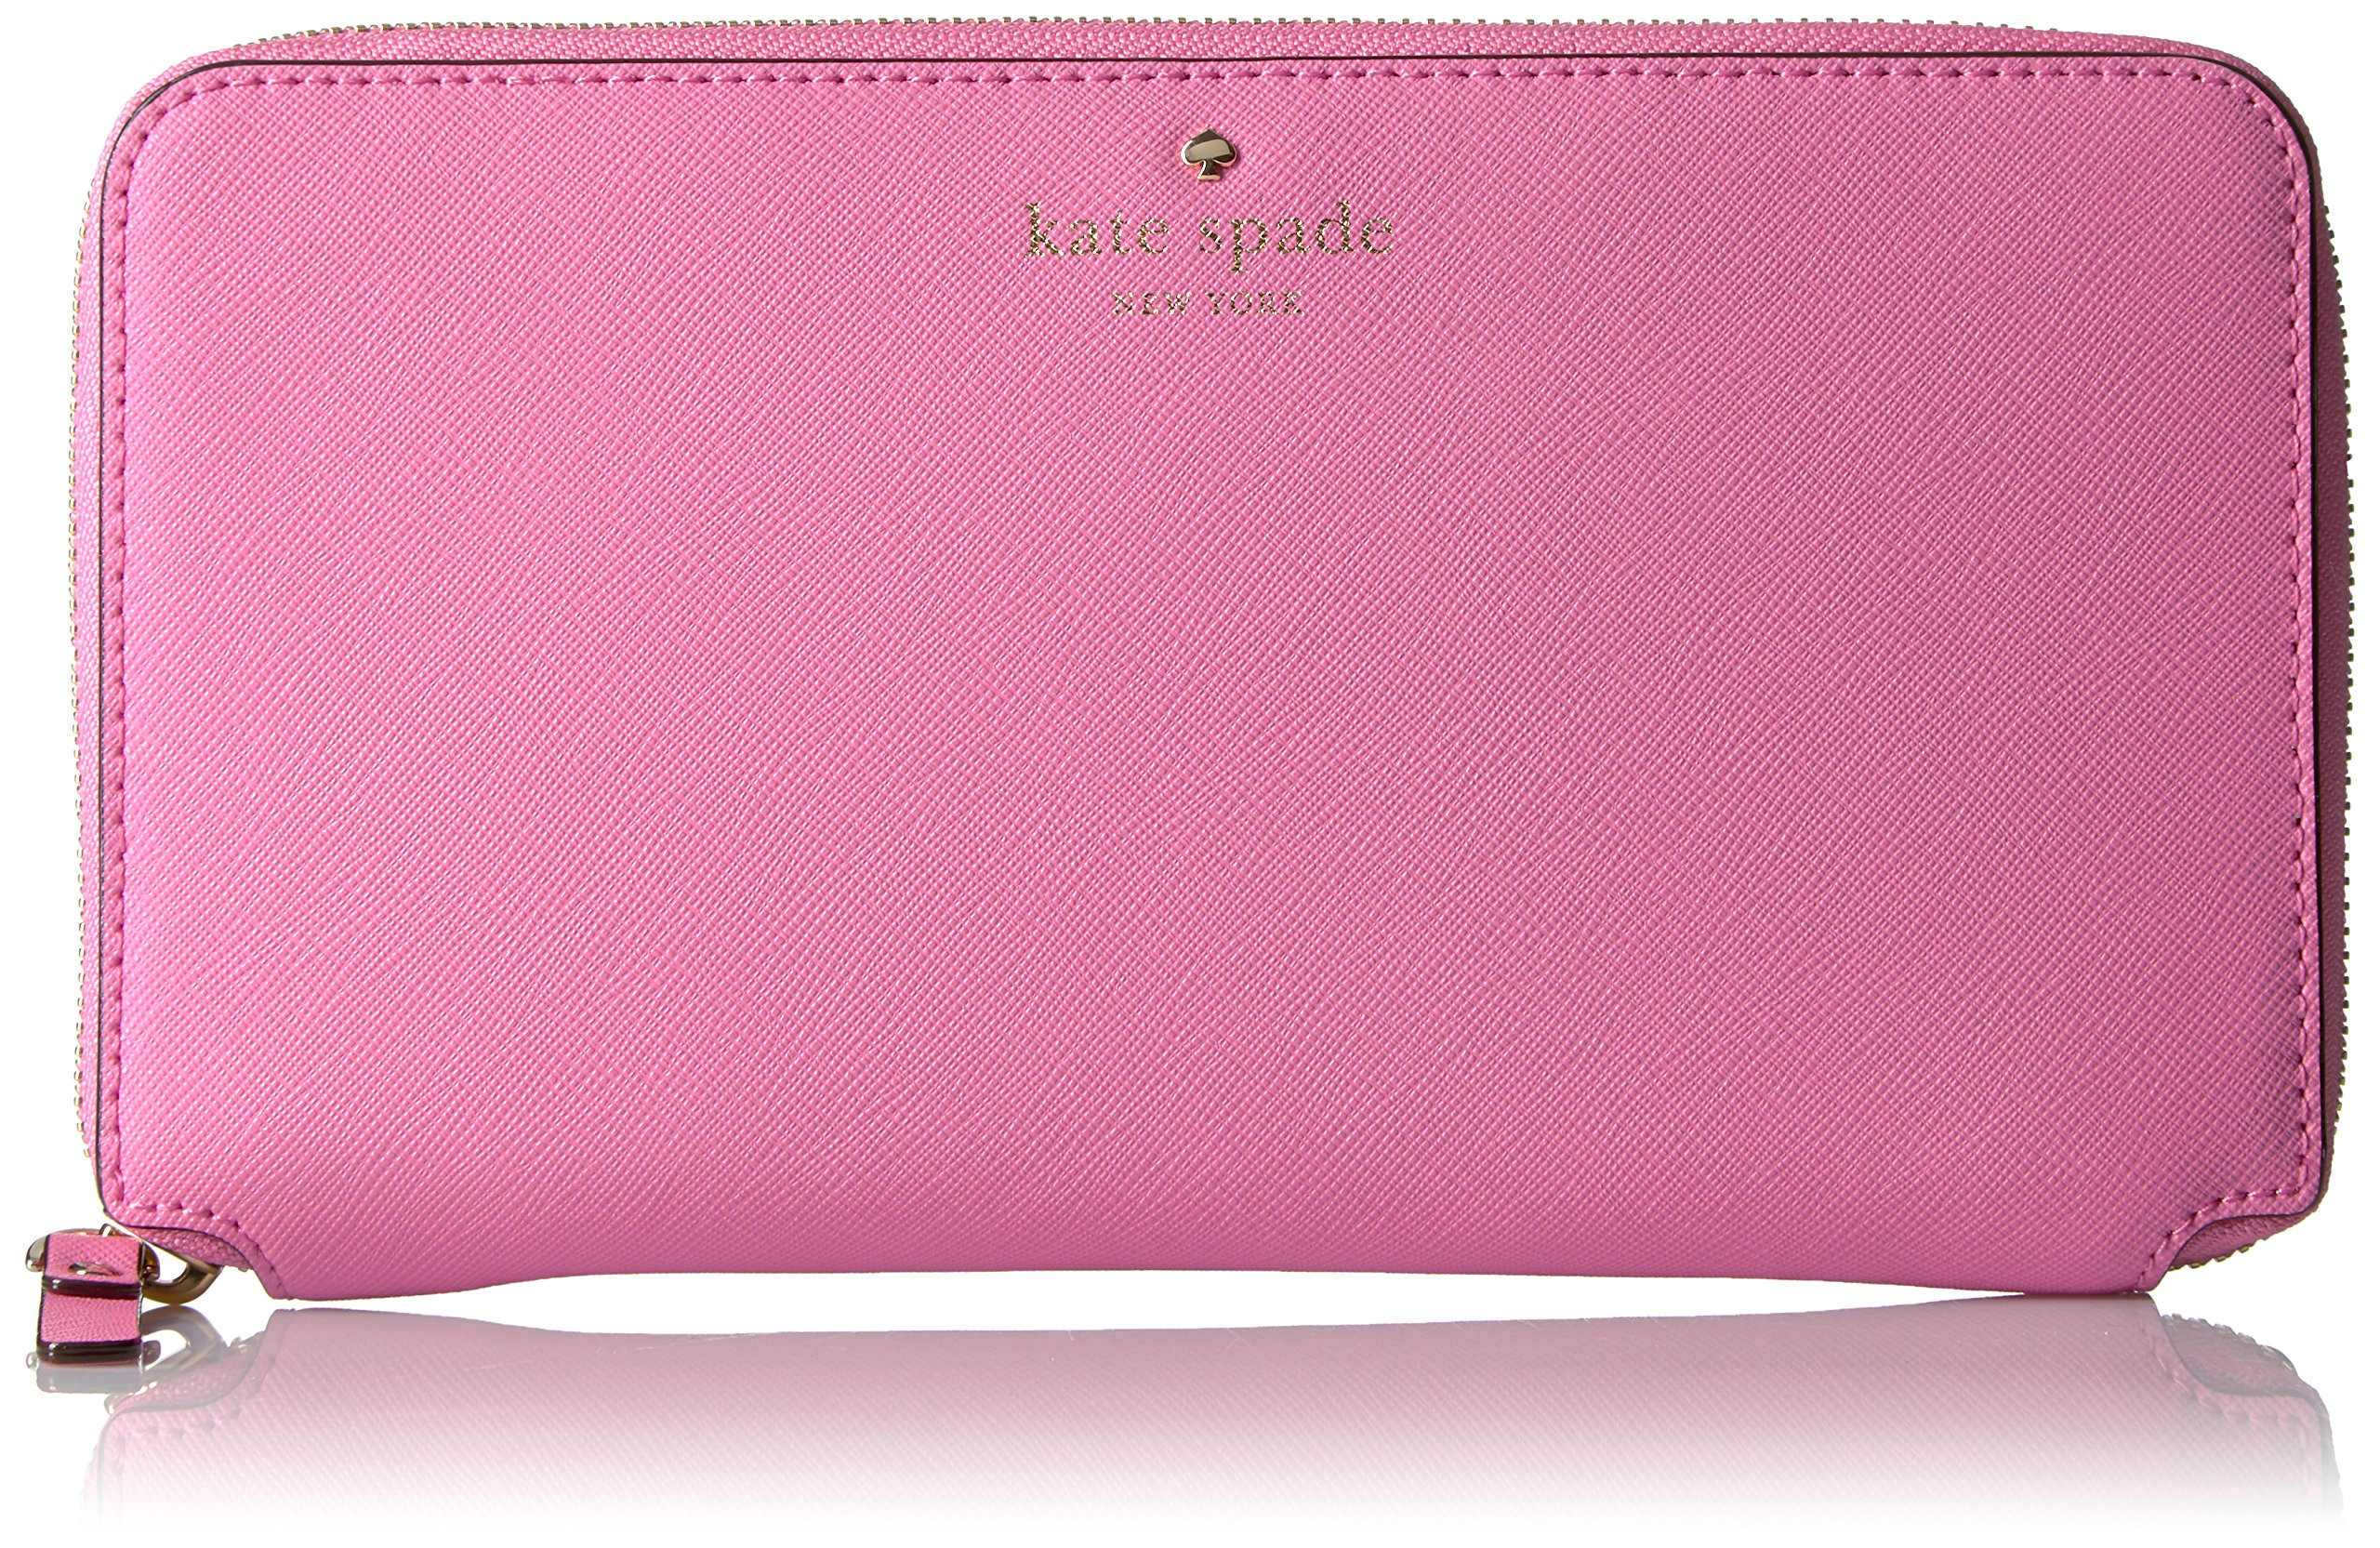 Cedar Street Maia Travel Wallet Wallet, Rouge Pink, One Size by Kate Spade New York